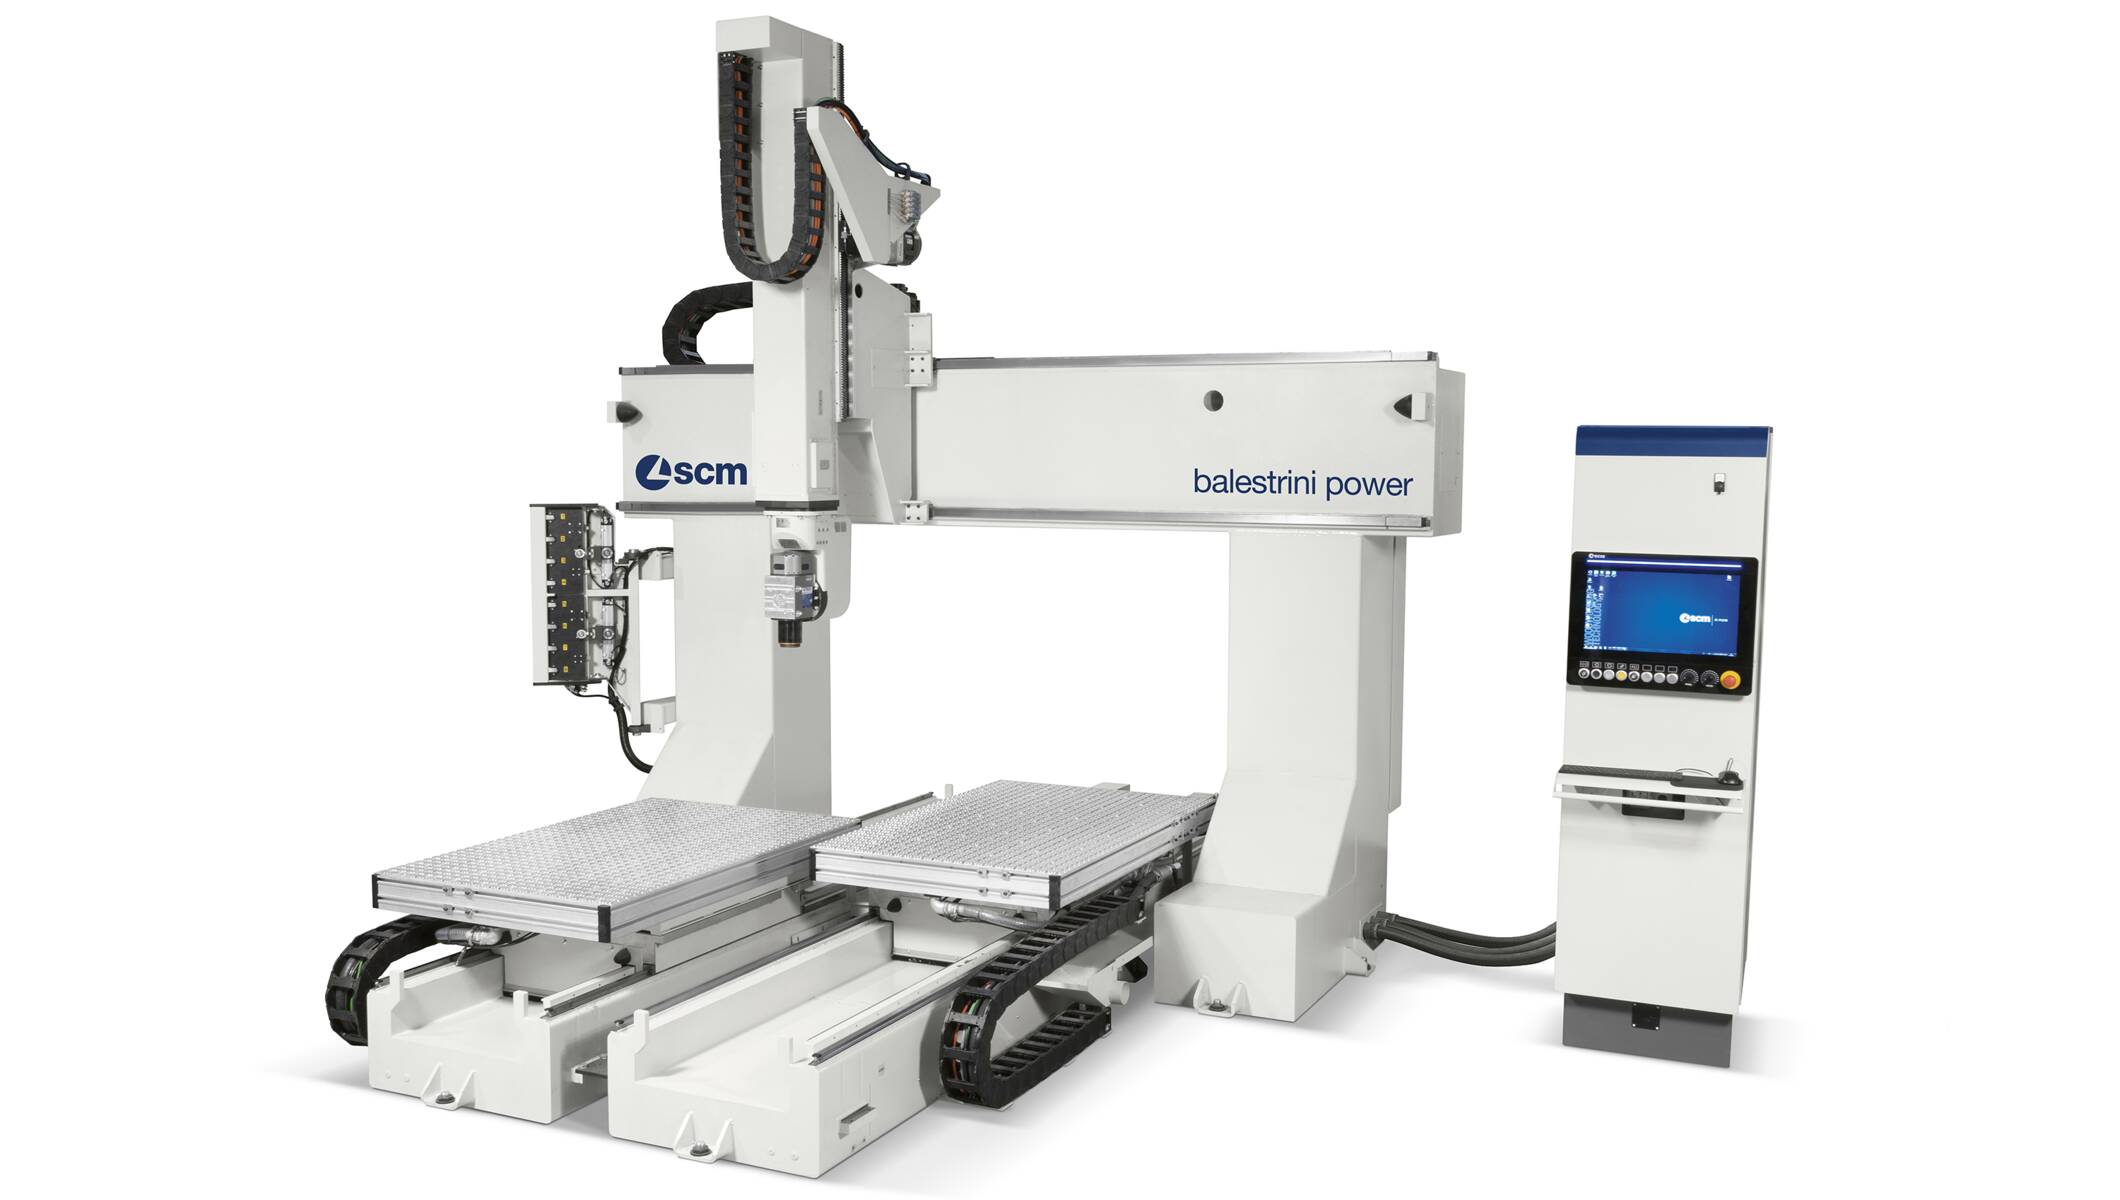 CNC Machining Centres - CNC Machining Centres for solid wood routing and drilling - balestrini power